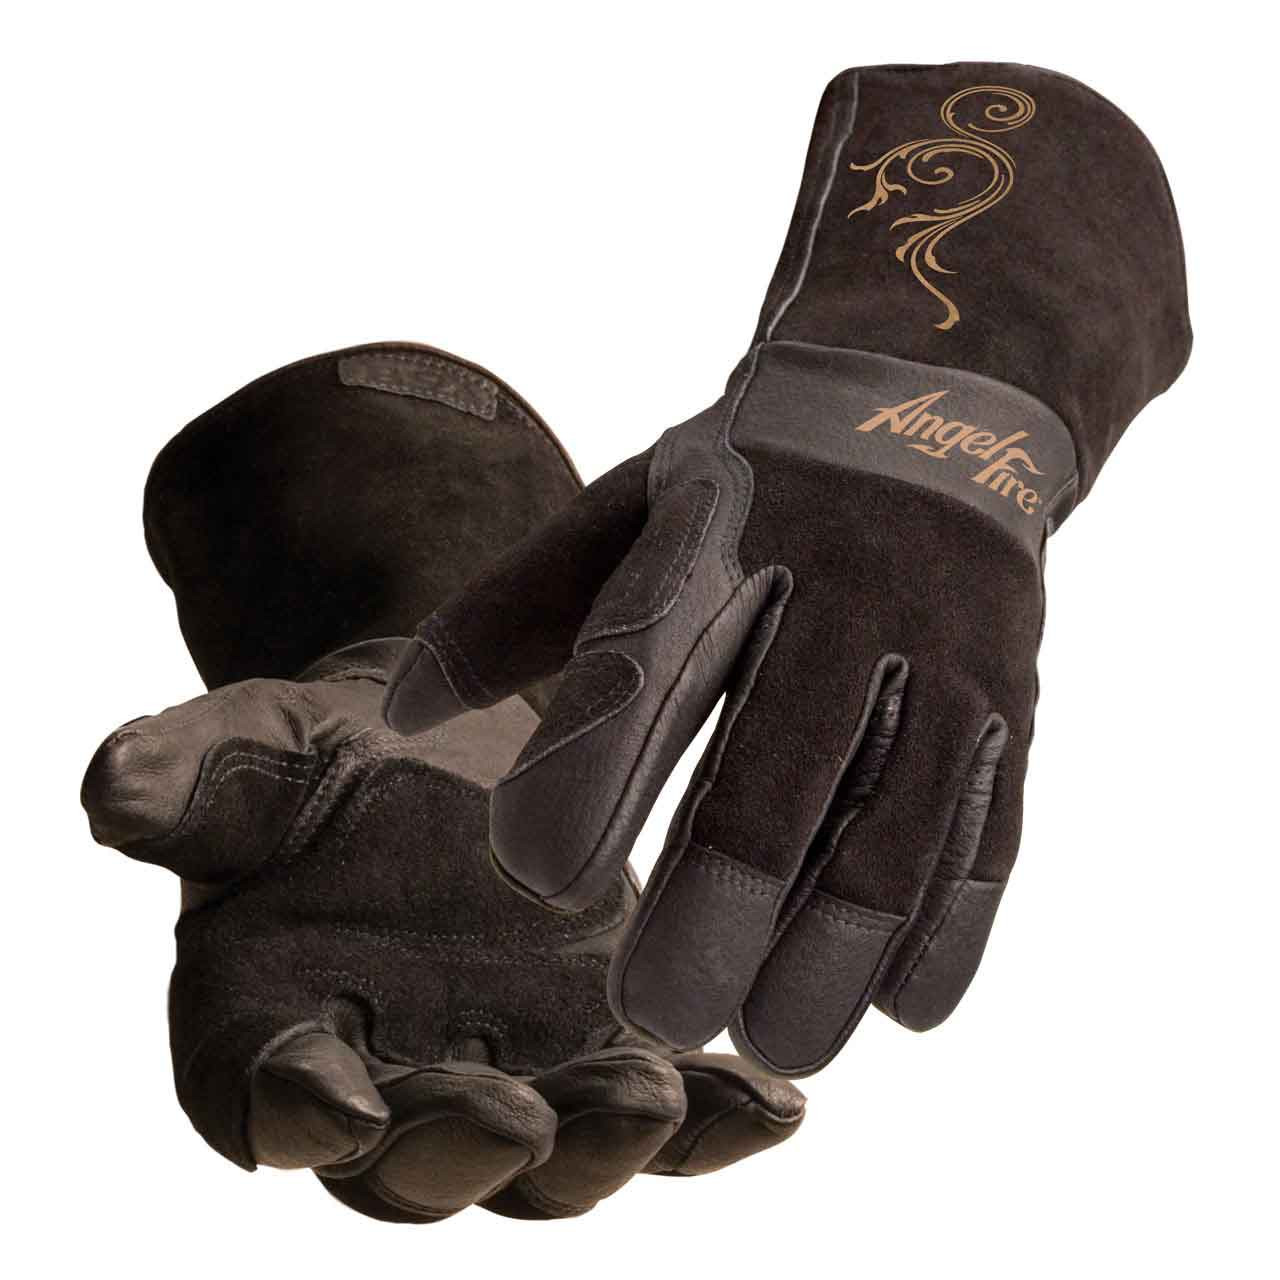 K3232-S Lincoln Electric Womens MIG Stick Welding Gloves Womens Small Kevlar Stitching